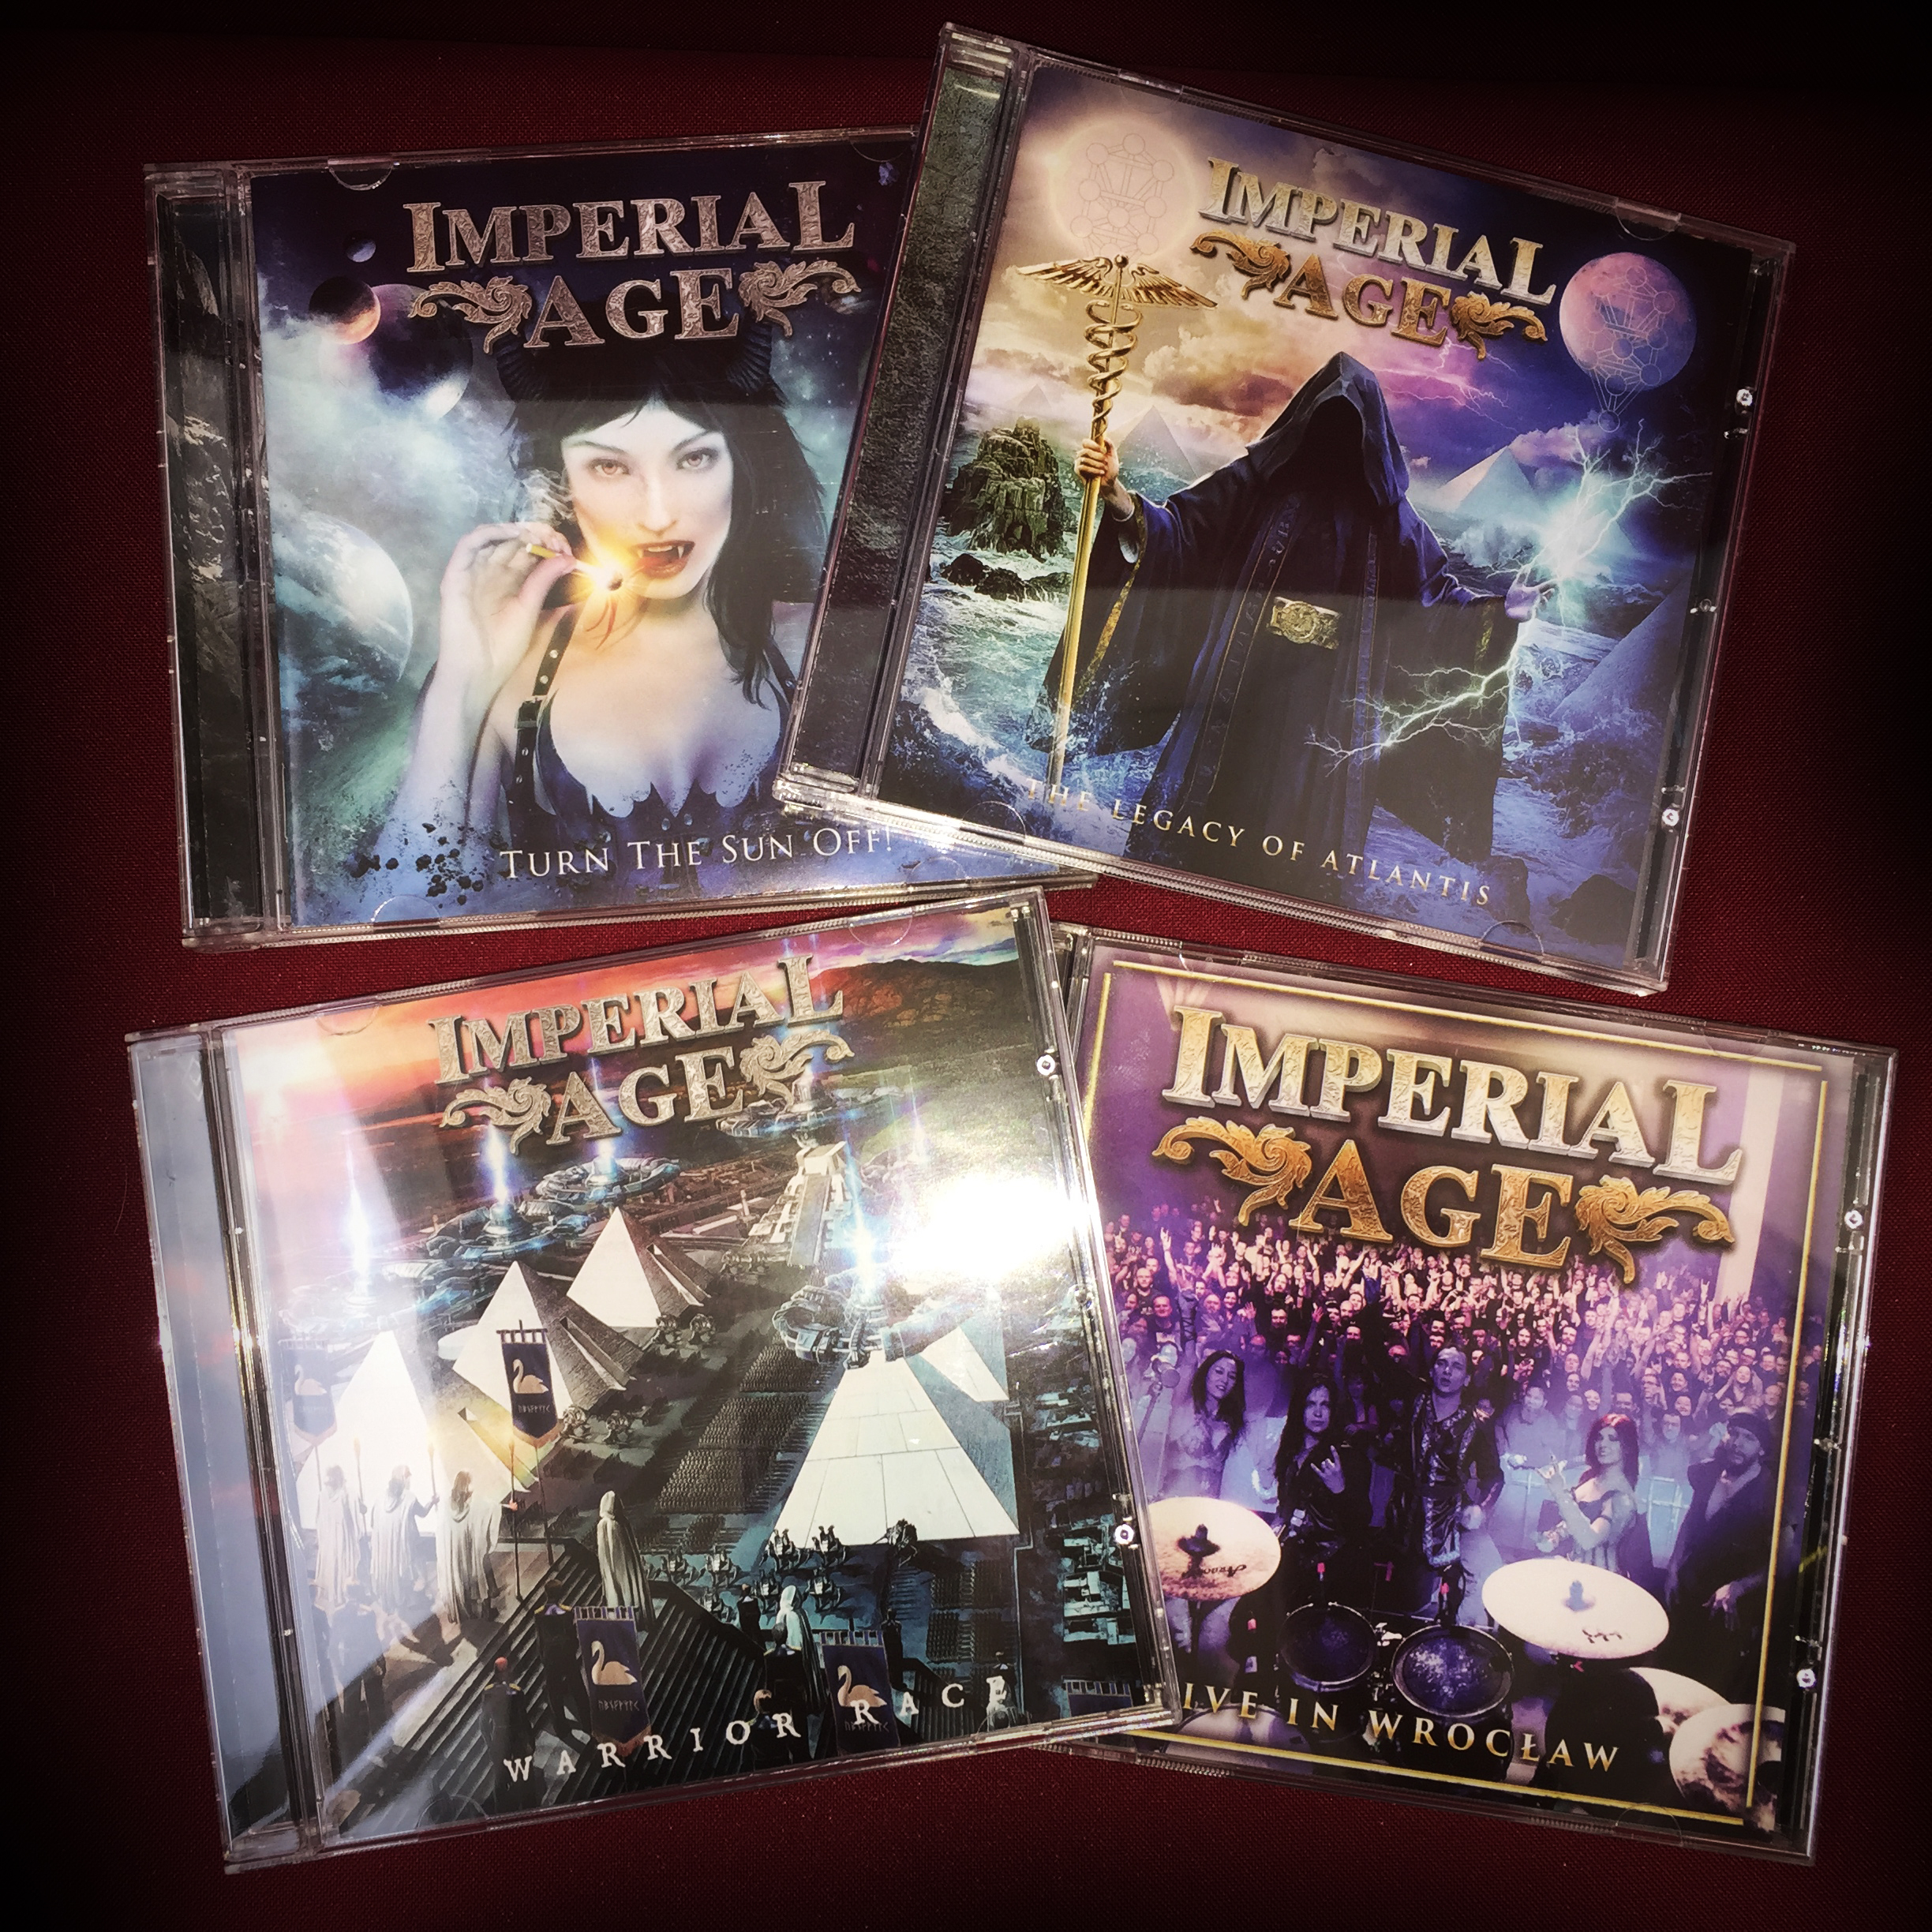 SPECIAL OFFER: 4 CDs for the price of 3 CDs!